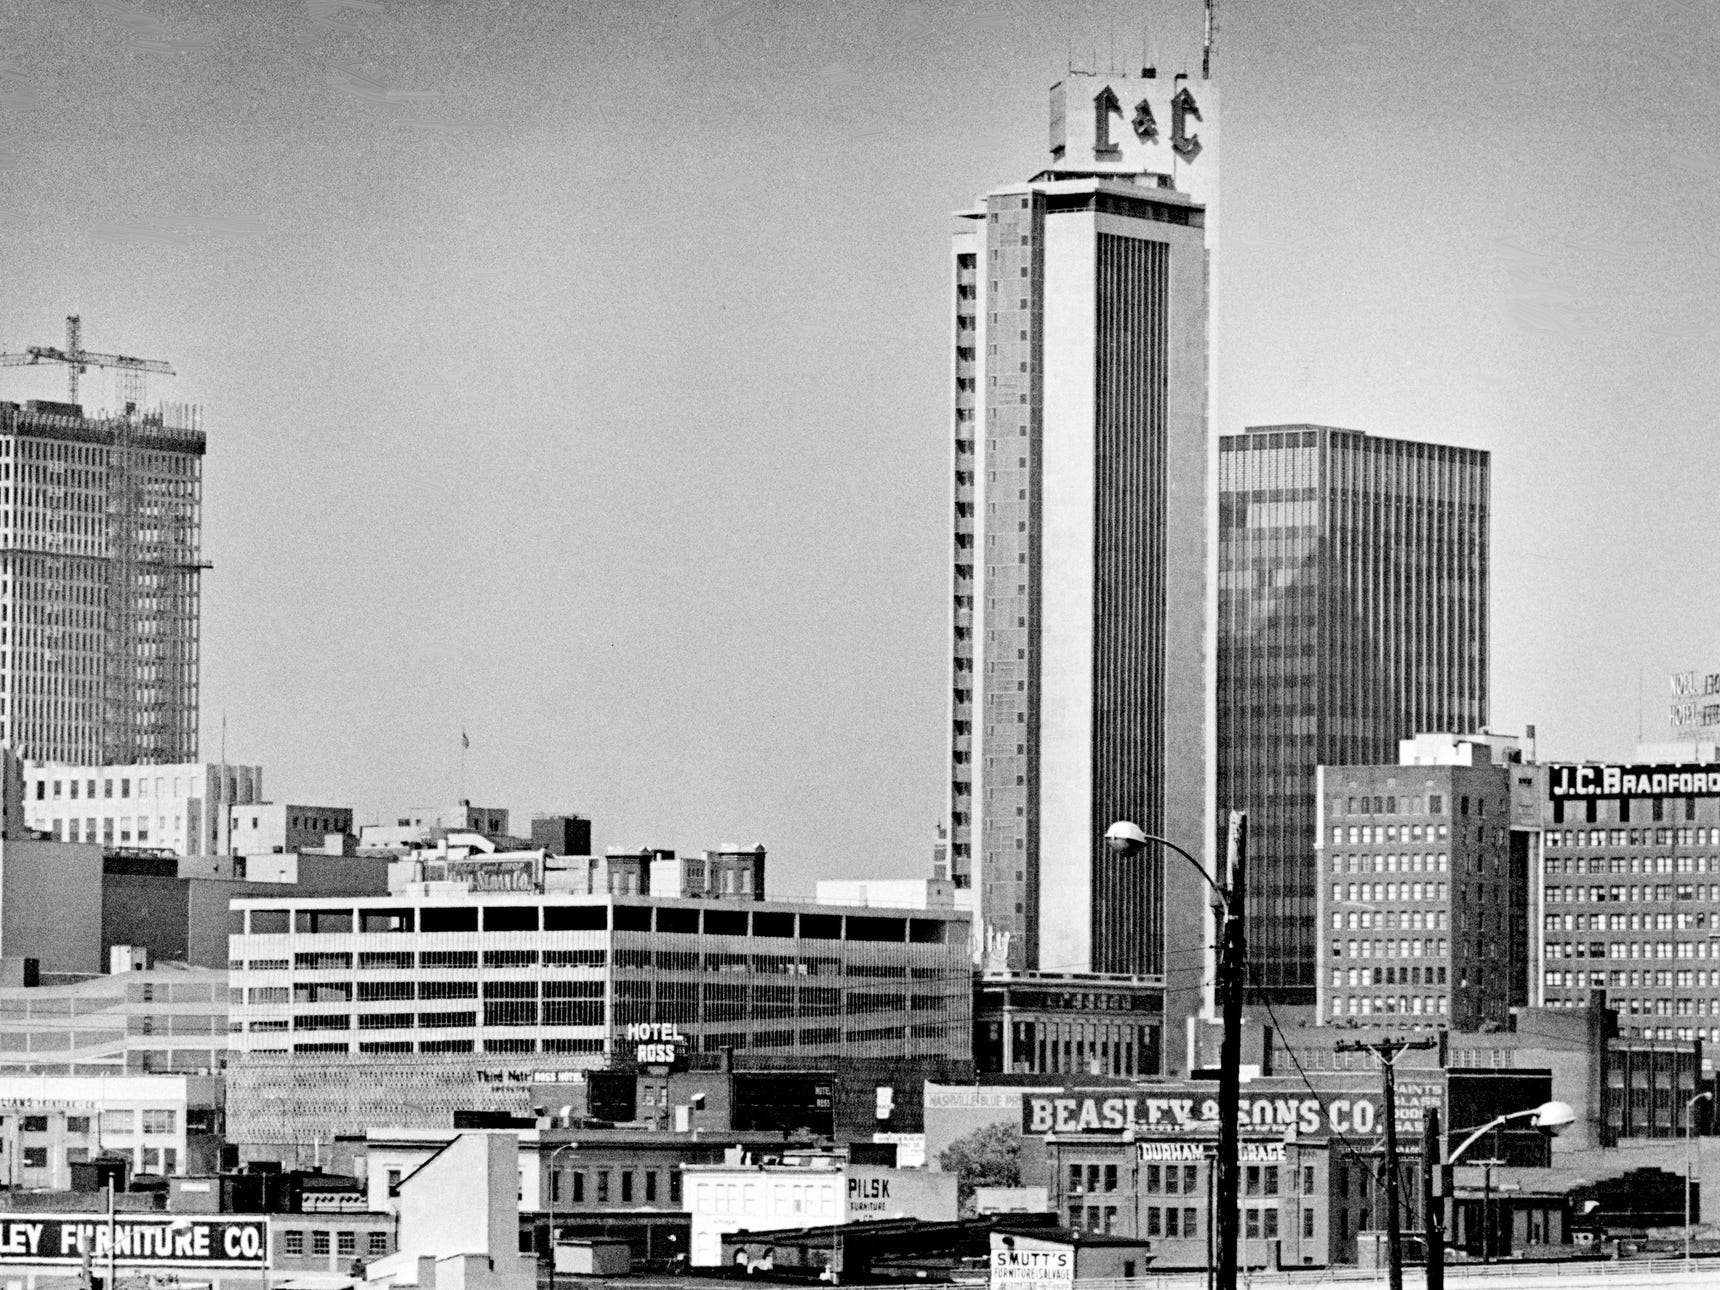 Nashville skyline has the Life and Casualty Tower, left, and the J.C. Bradford building towering over the city Sept. 14, 1968. The Bradford building was Nashville first skyscraper when it was the First National Bank.